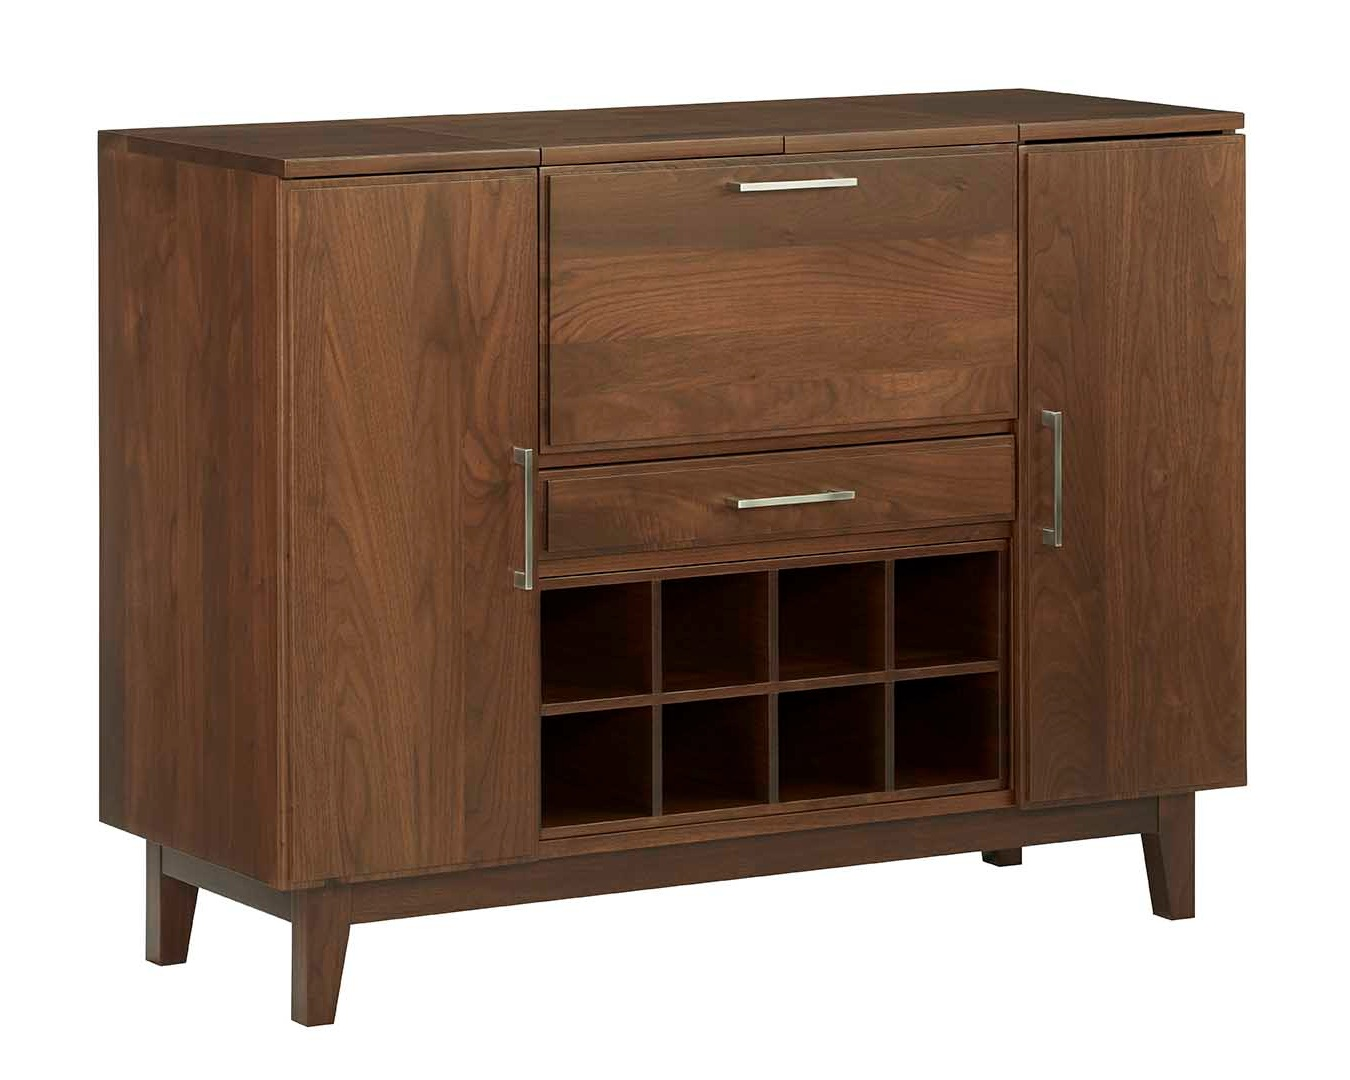 The Aero collection serving credenza.  See more in our furniture collections >